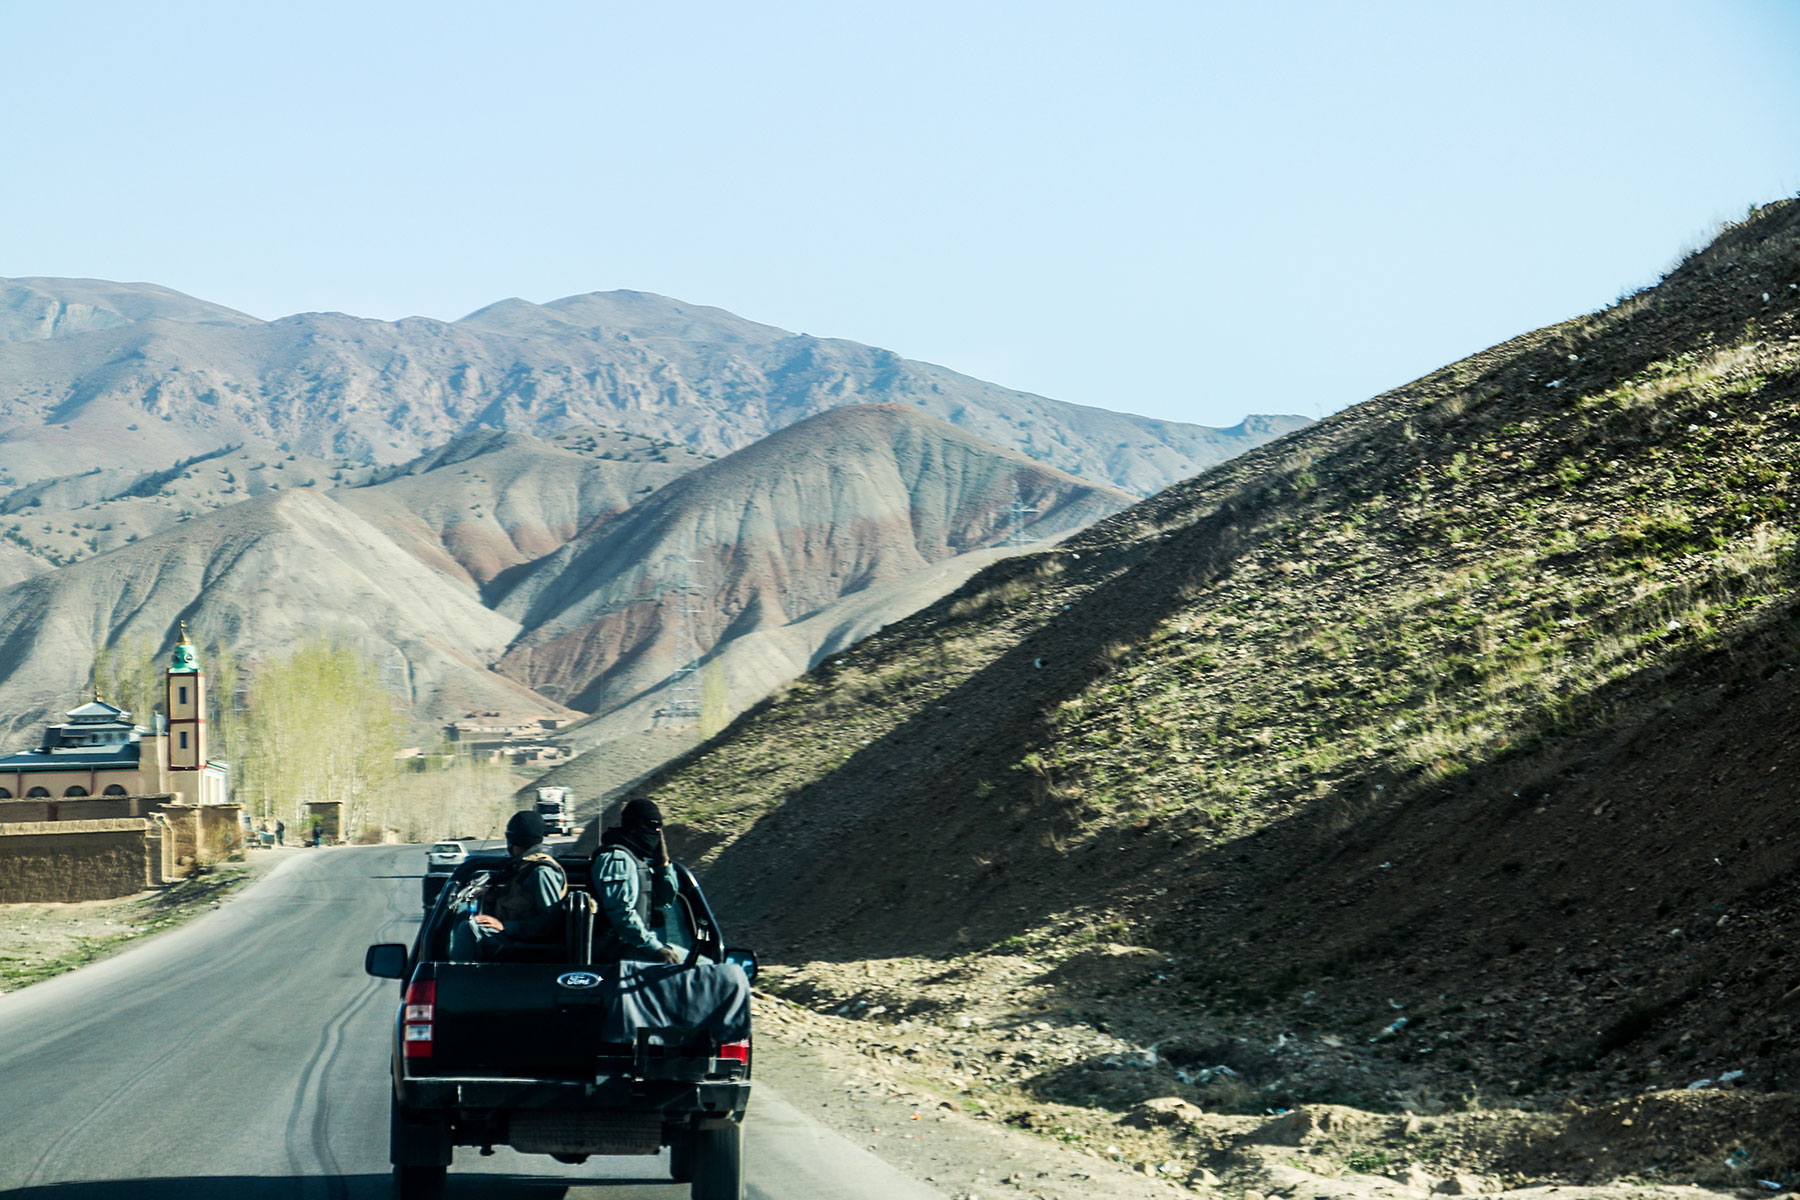 Andrea Schmitz, Christian Wagner, German Institute for International and Security Affairs, Taliban international recognition, Taliban China relations, Taliban Russia relations, Taliban Pakistan relations, Taliban Uzbekistan relations, Taliban Afghanistan government, Taliban Afghanistan security news